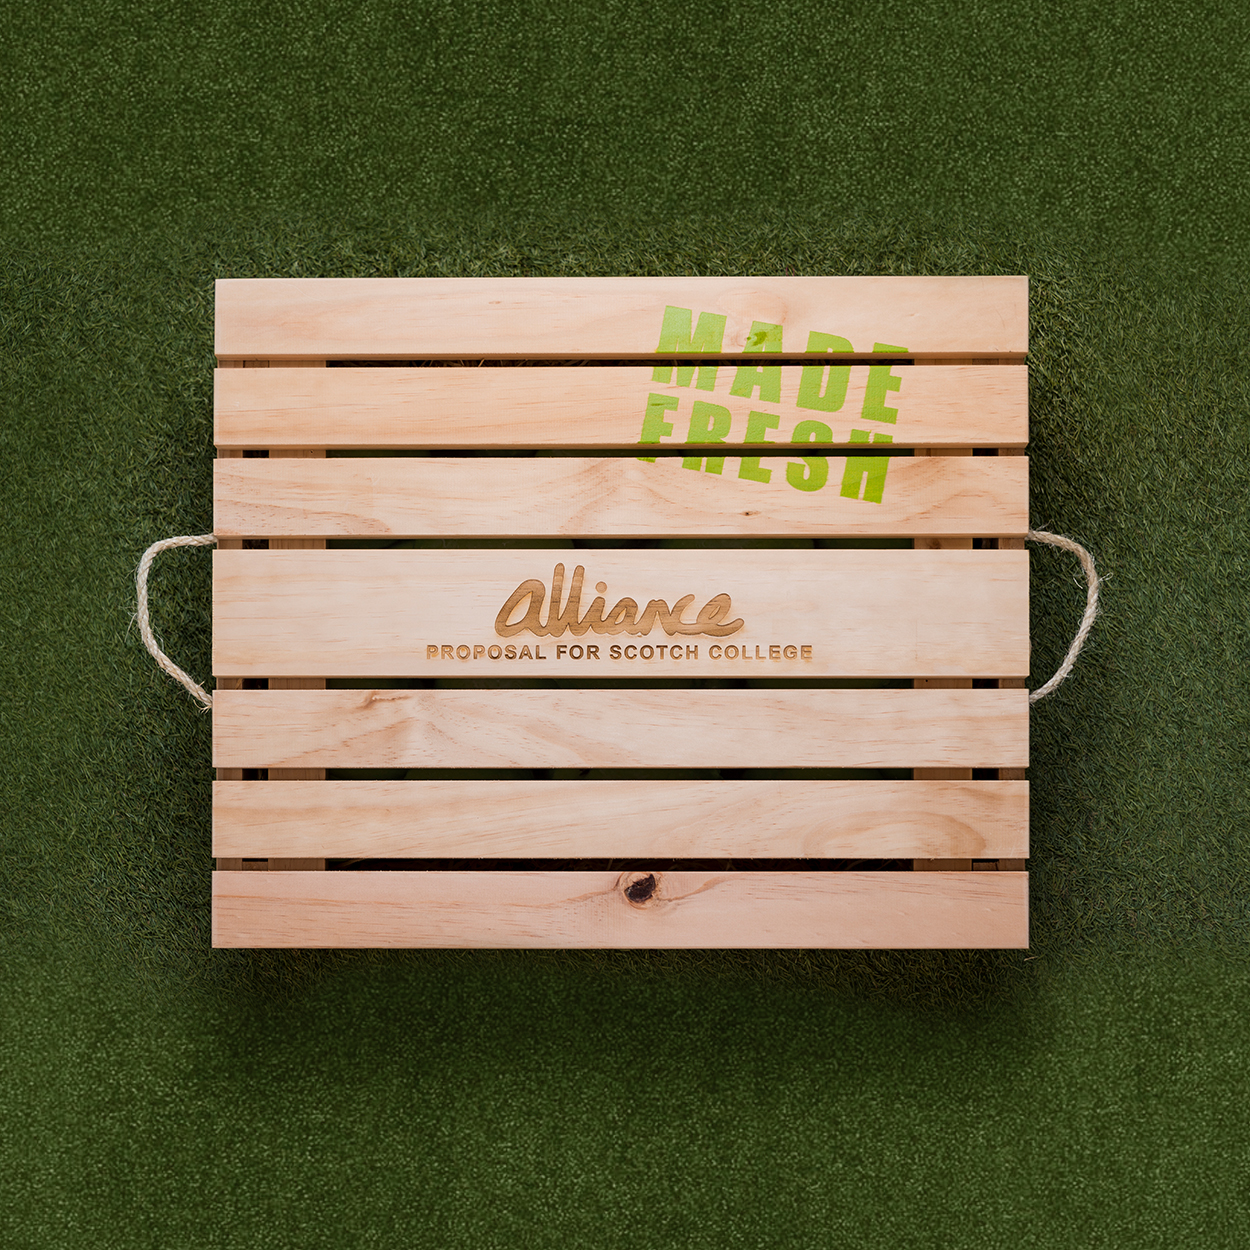 Alliance rebranded packaging tender box on grass background